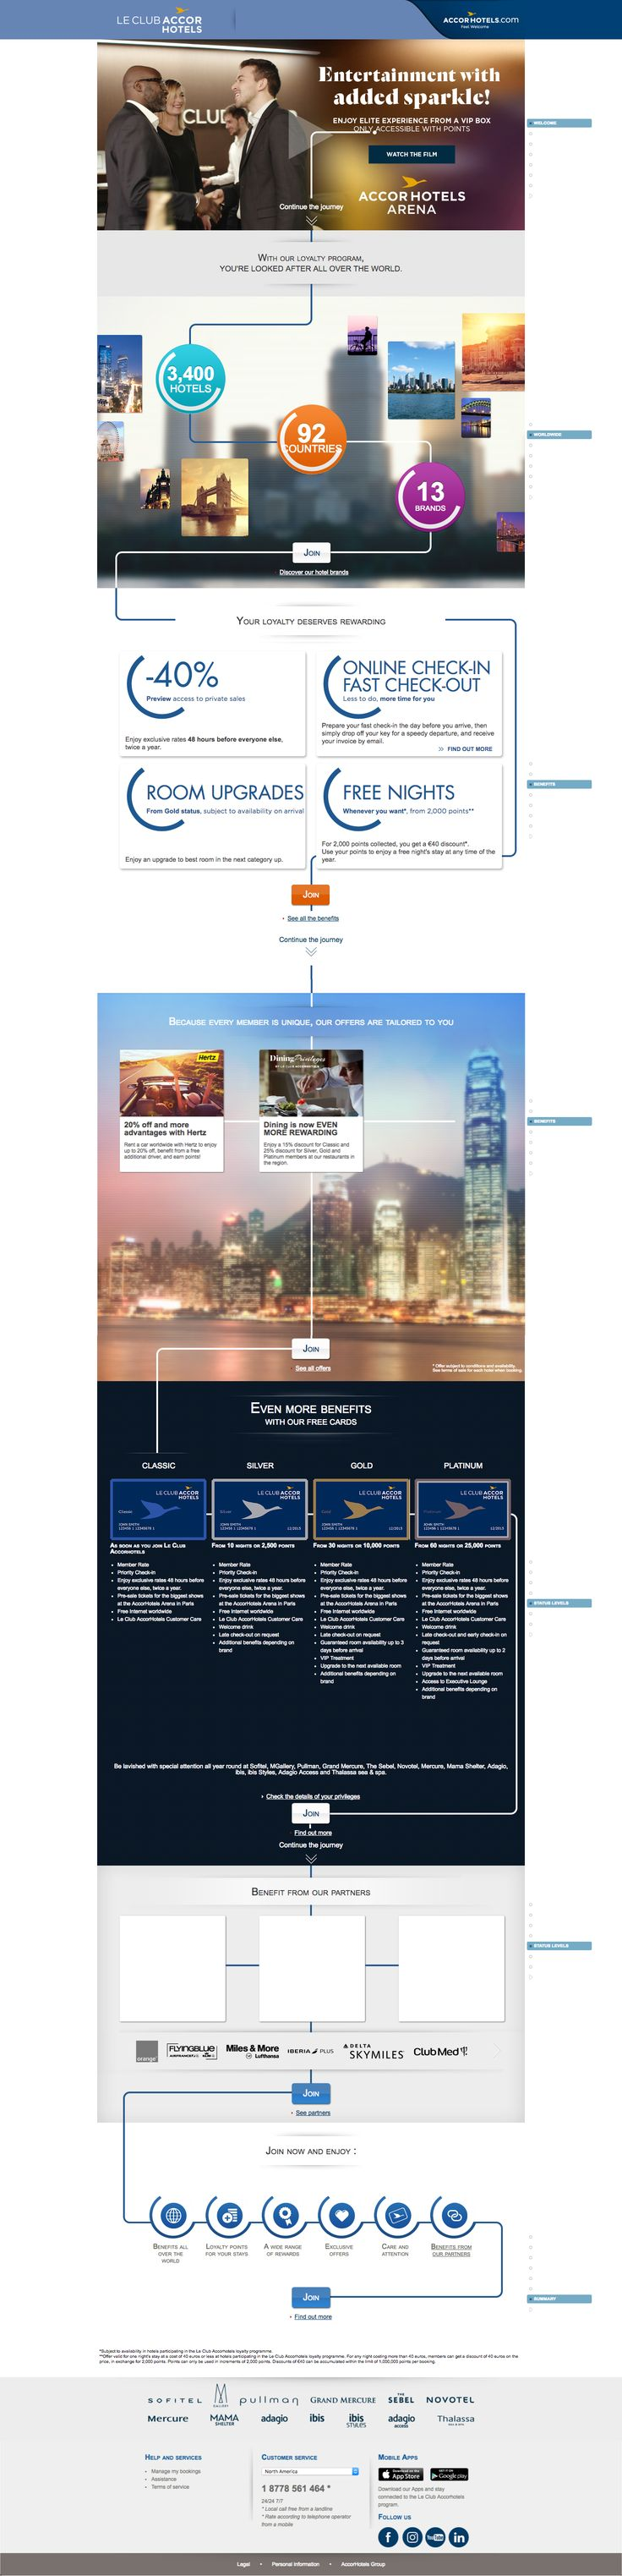 Accor Hotels' explainer page takes customers on an animated journey through their Le Club program.